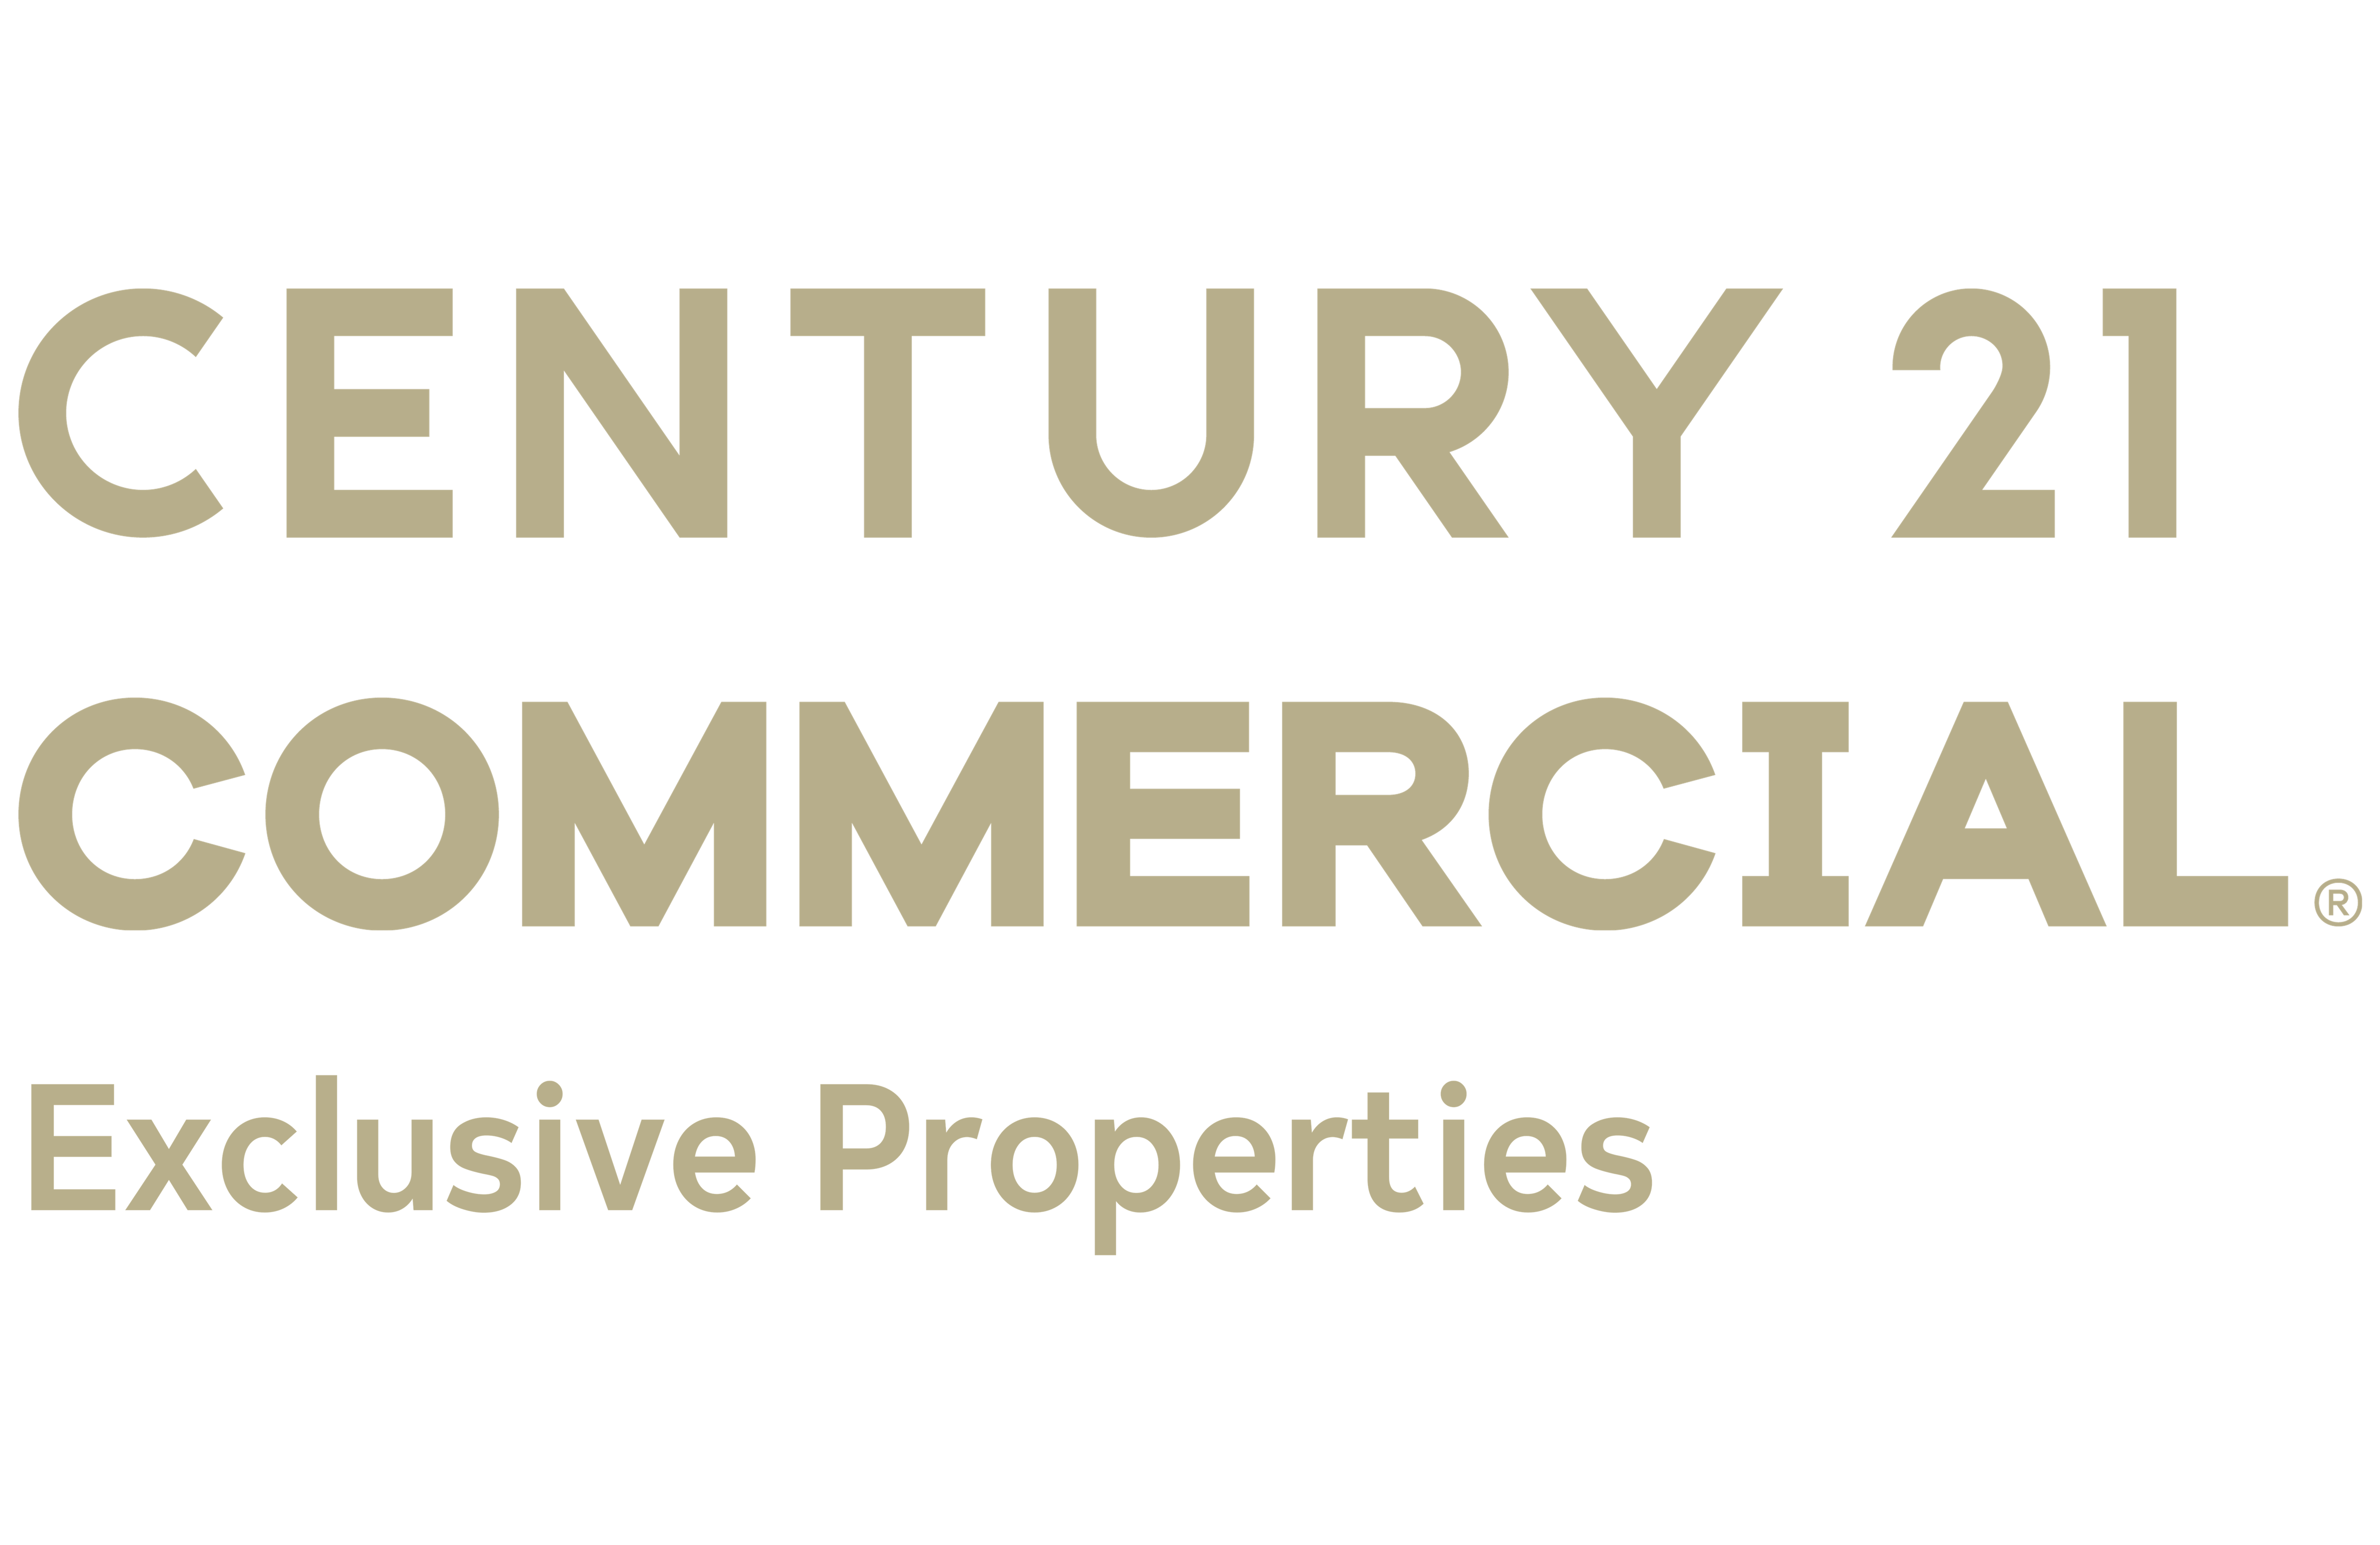 CENTURY 21 Exclusive Properties